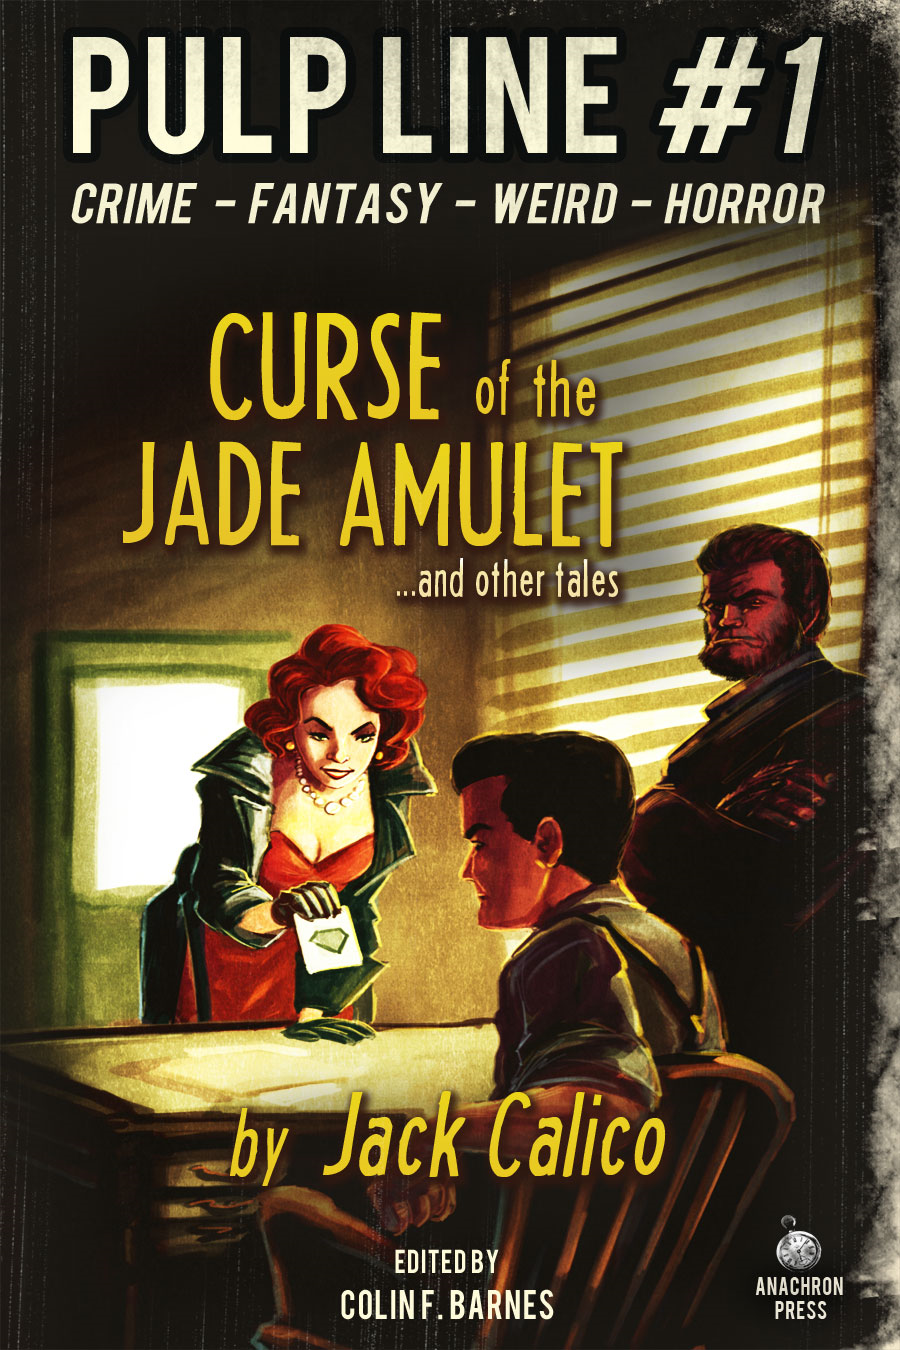 Curse of the Jade Amulet and other tales